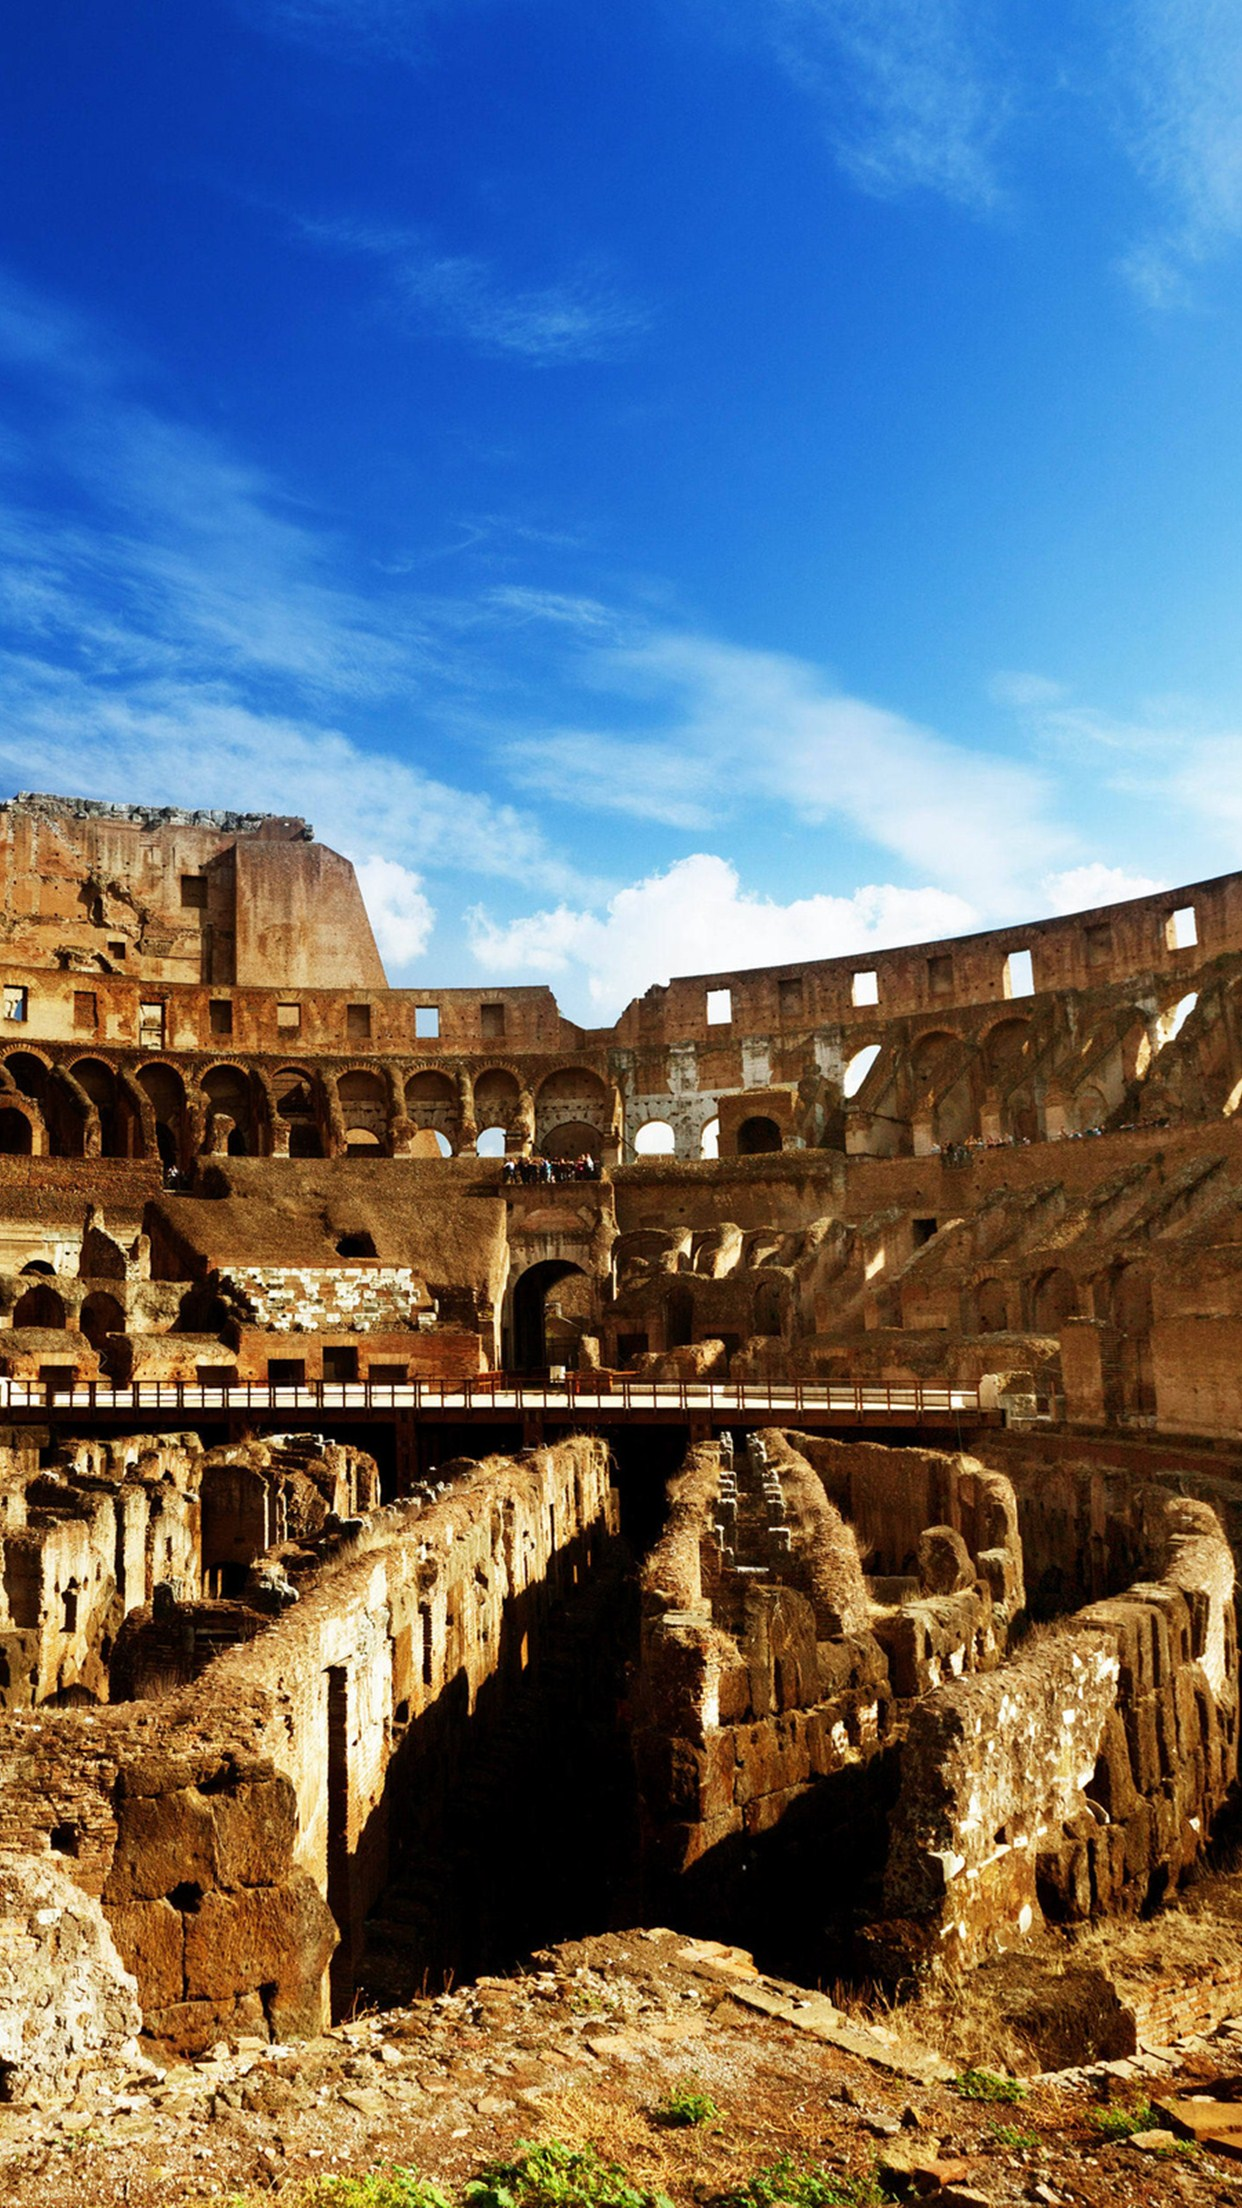 italie arene colisee 3Wallpapers iPhone Parallax Italy Arena Coliseum